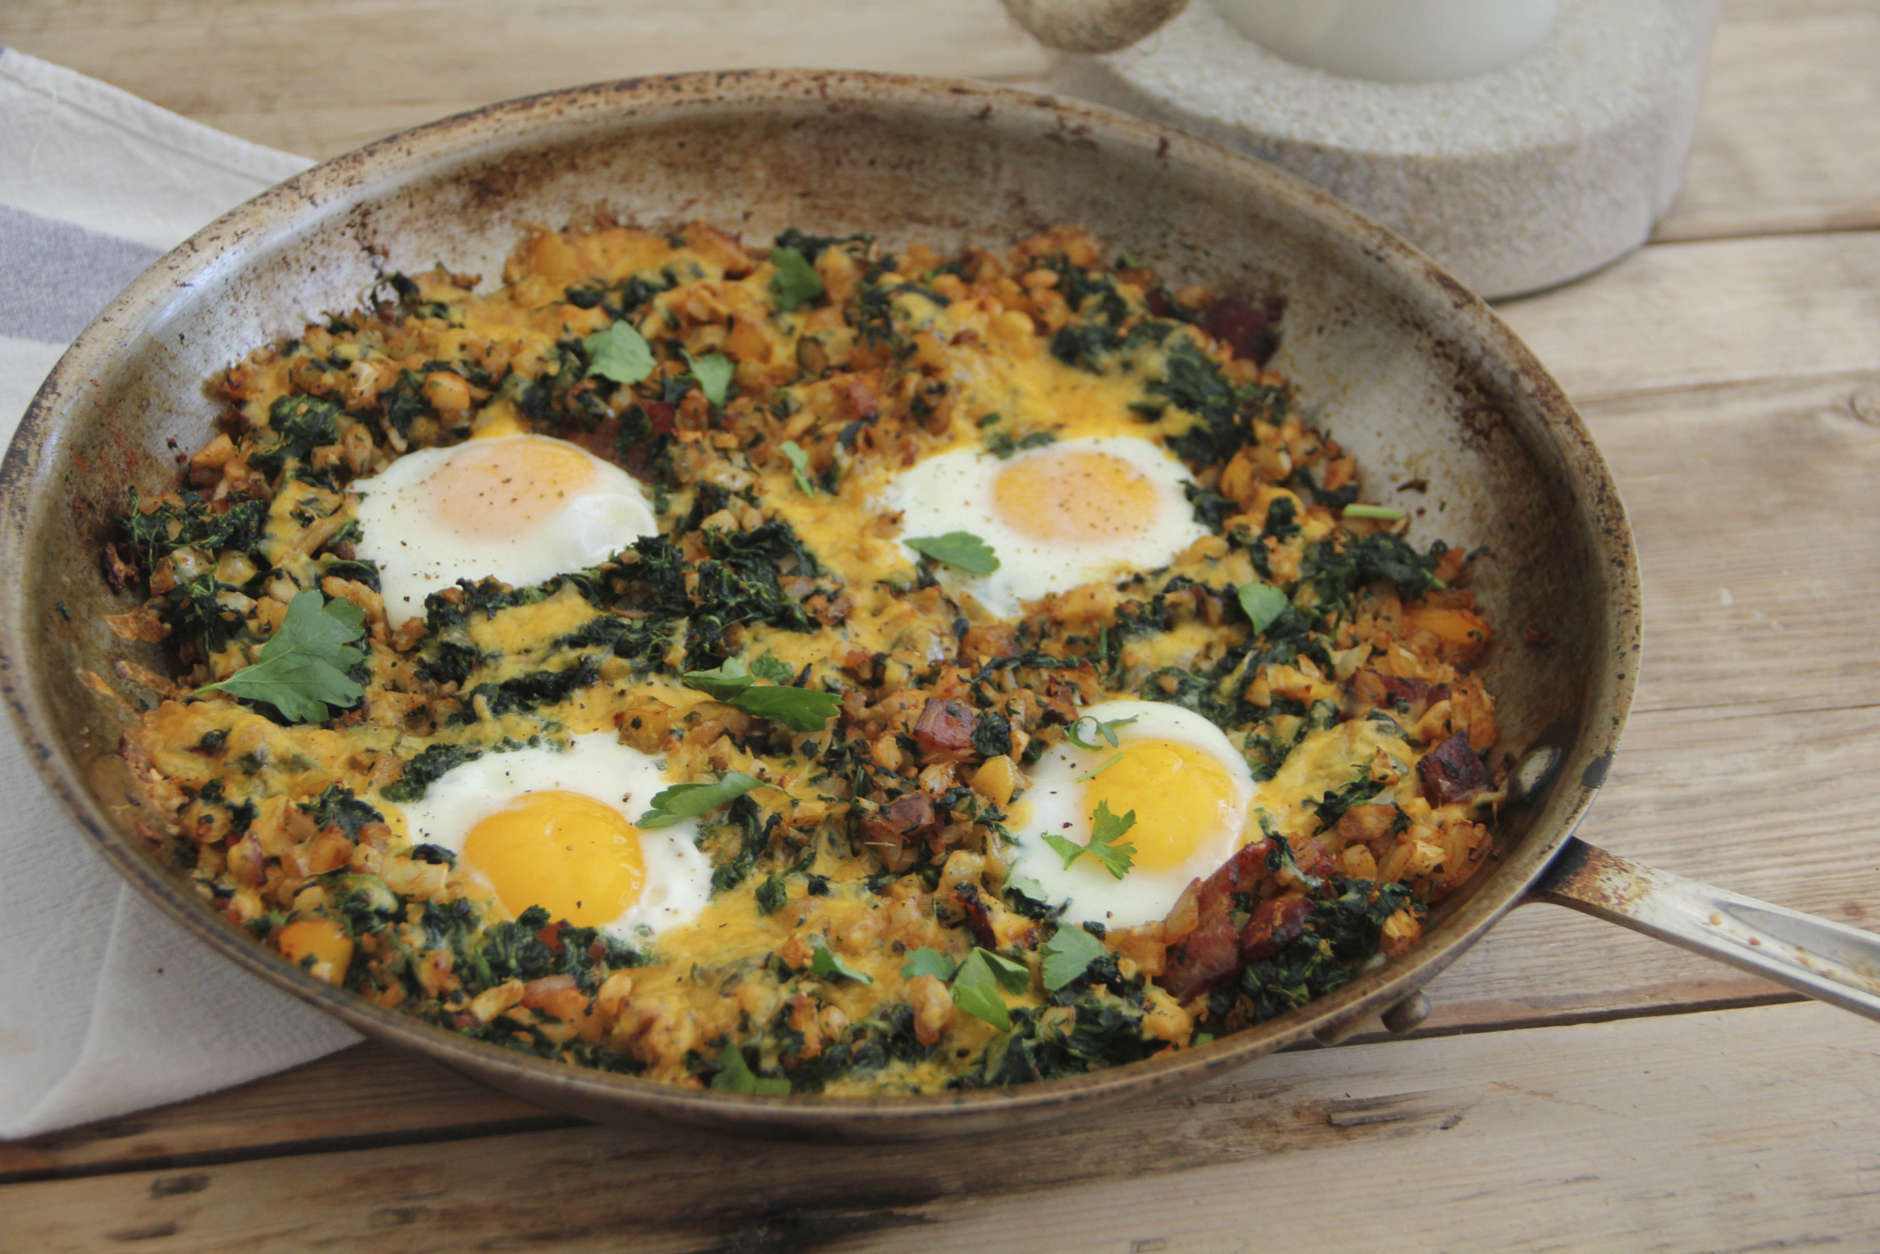 This March 6, 2017 photo shows a country-style breakfast skillet with eggs, bacon and vegetables in Coronado, Calif. This dish is from a recipe by Melissa d'Arabian. (Melissa d'Arabian via AP)